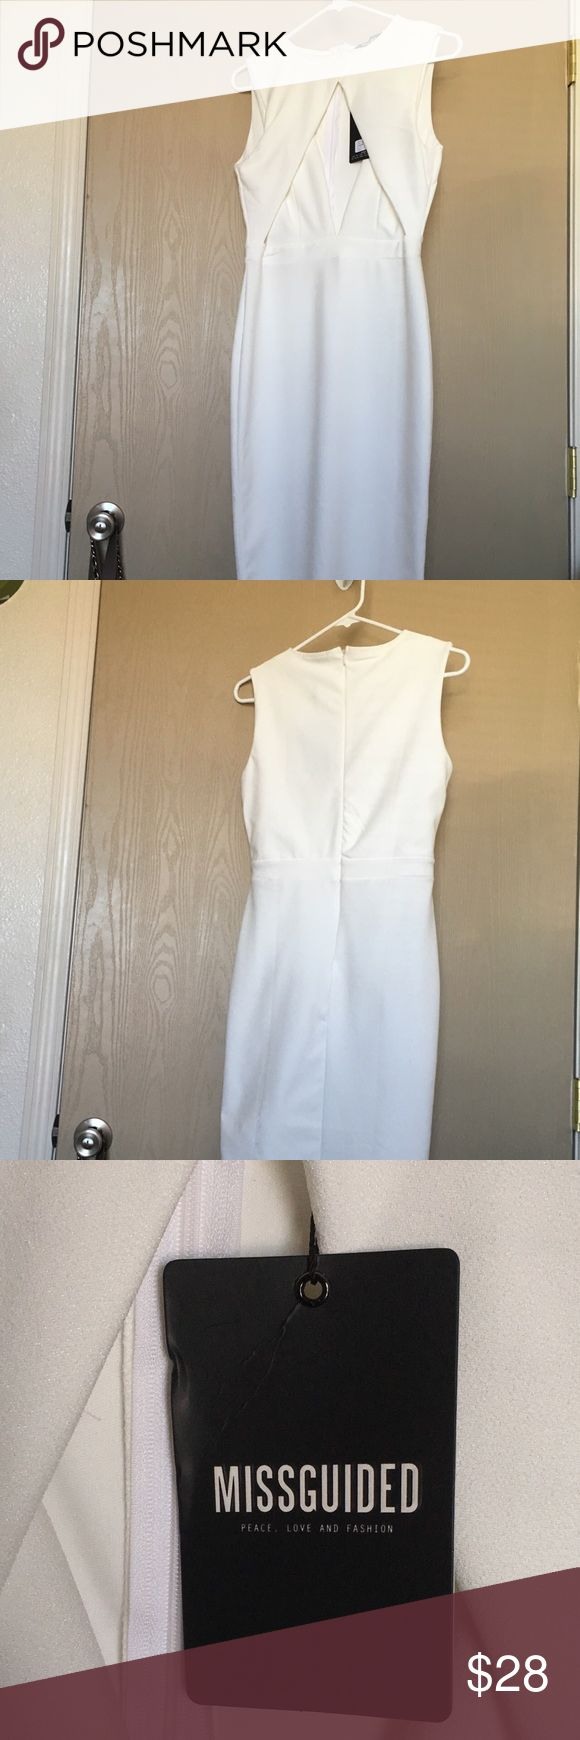 White midi length dress White dress. Comes to about knee length or a little bit under. Has cutouts in the front to show cleavage and smaller cutouts on the sides to show a bit more skin misguided Dresses Midi